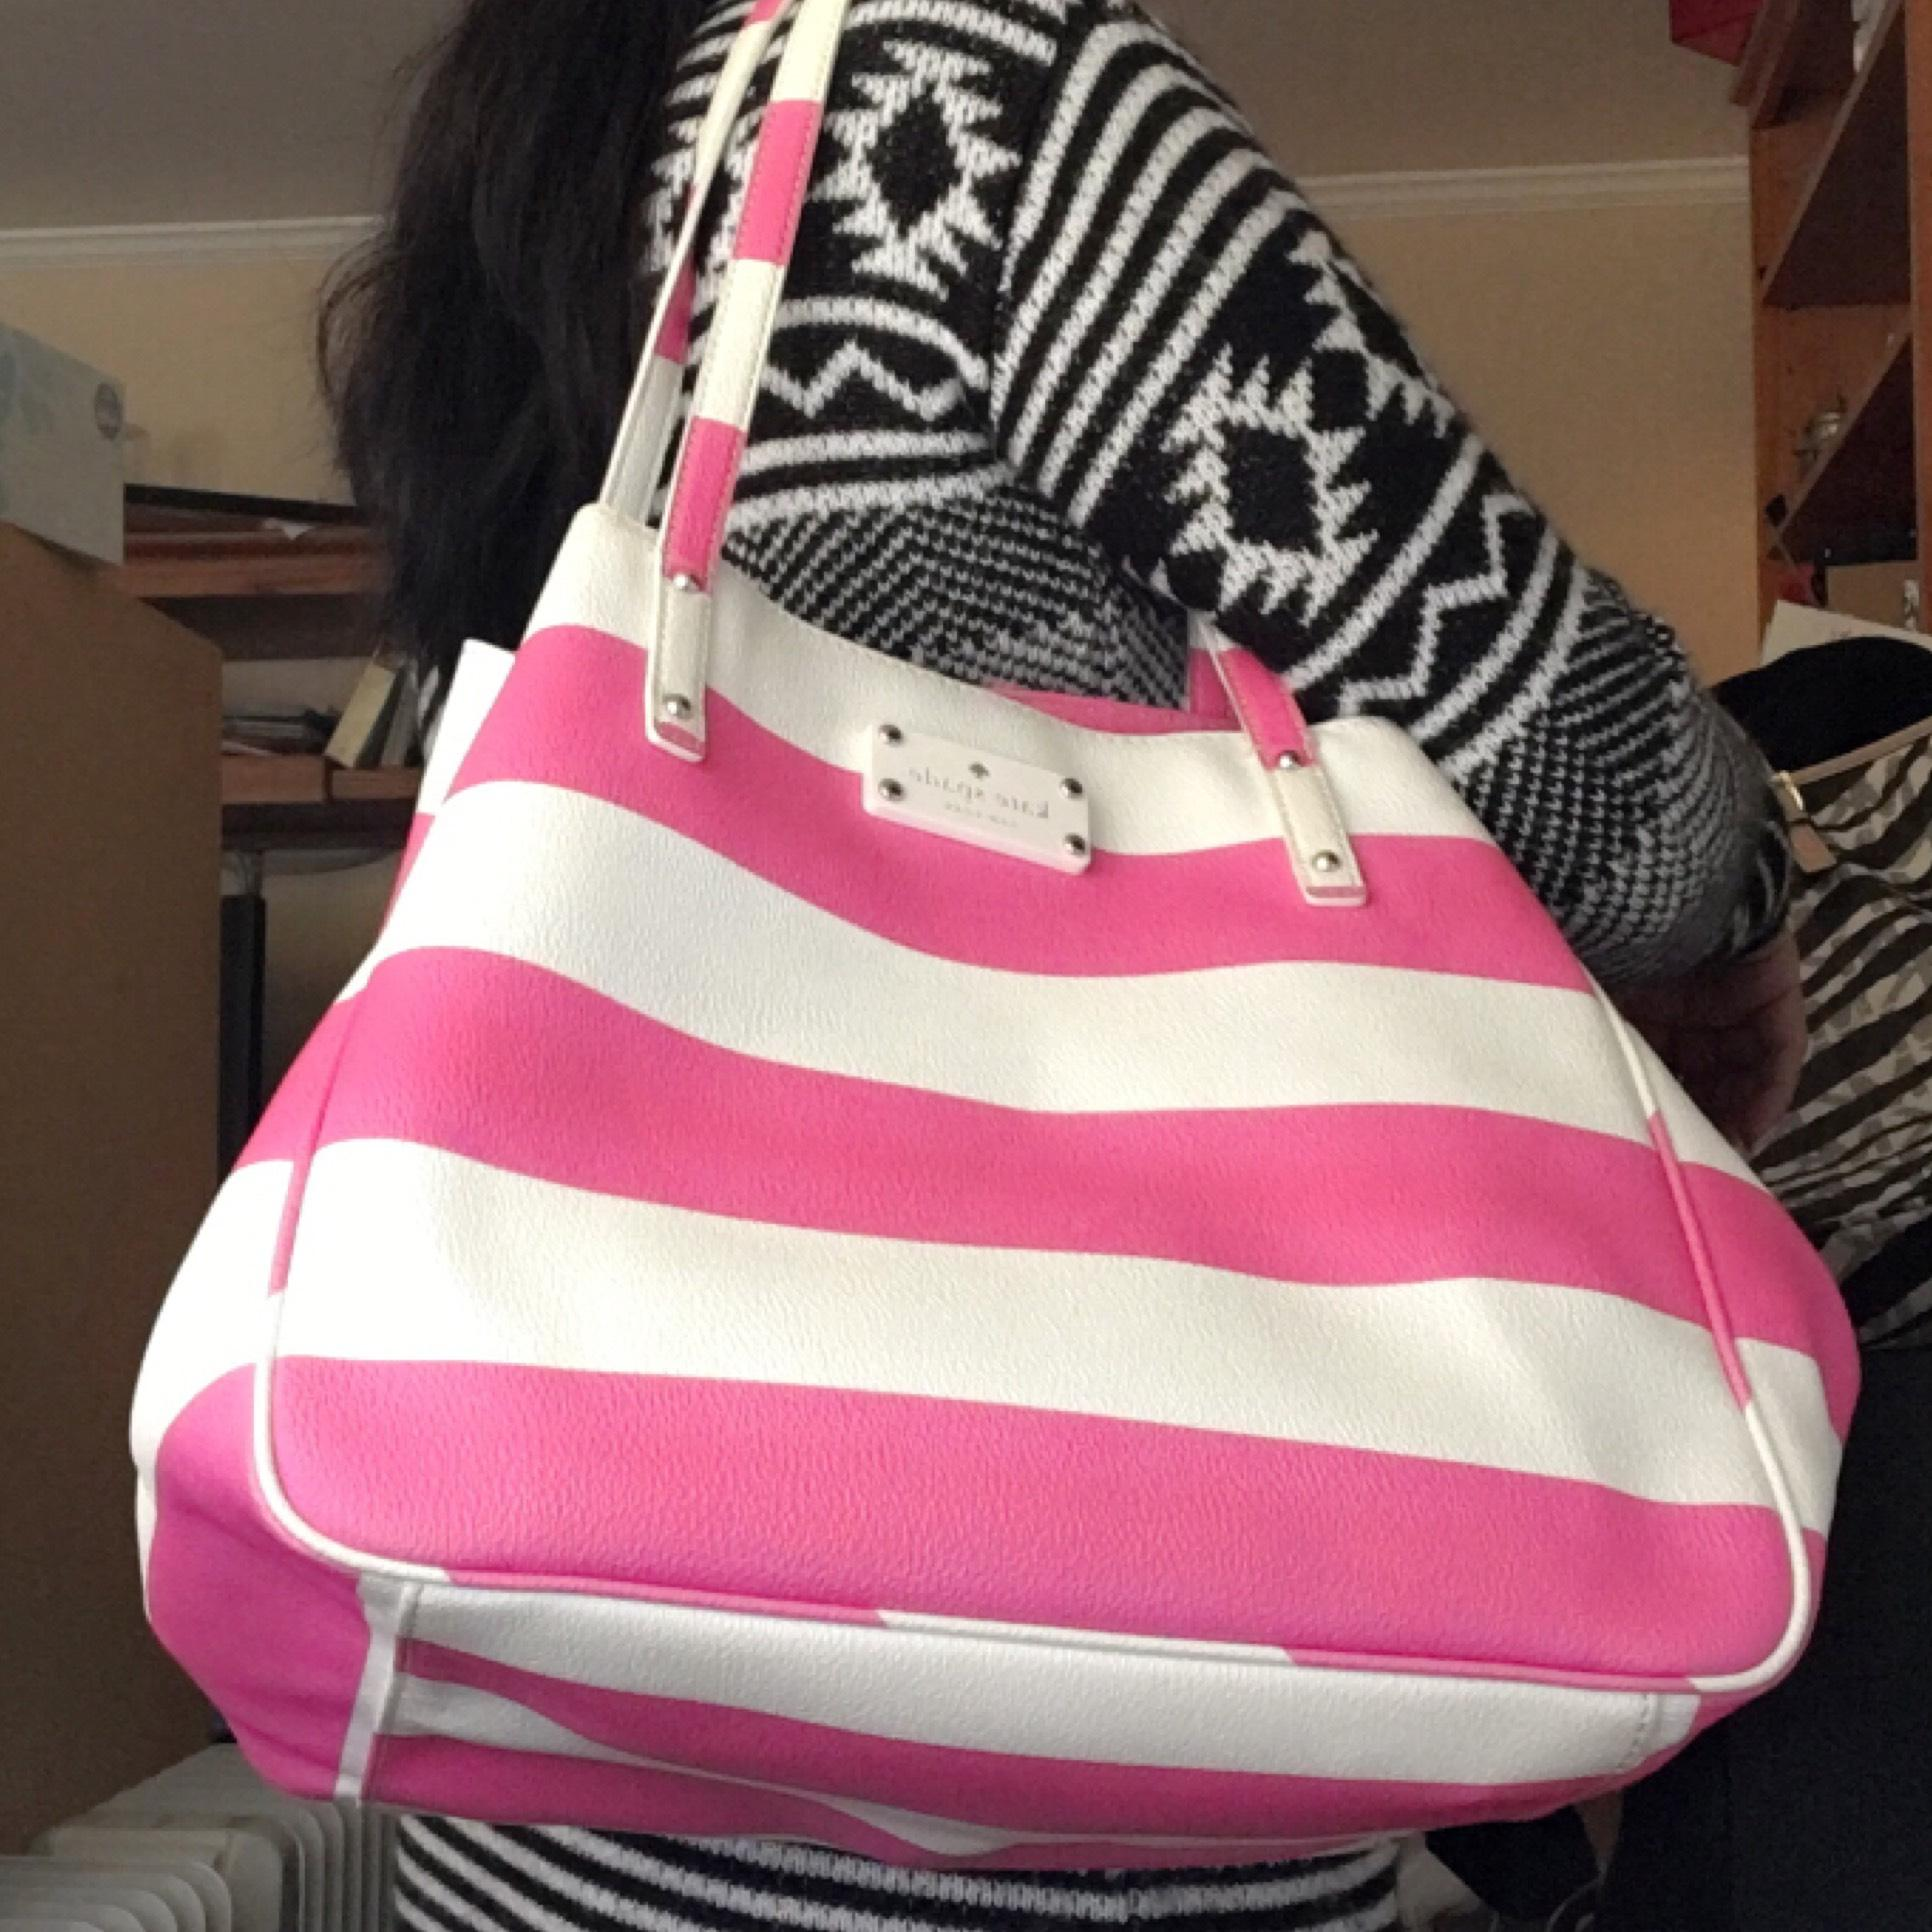 Kate Spade Shoppers Bag